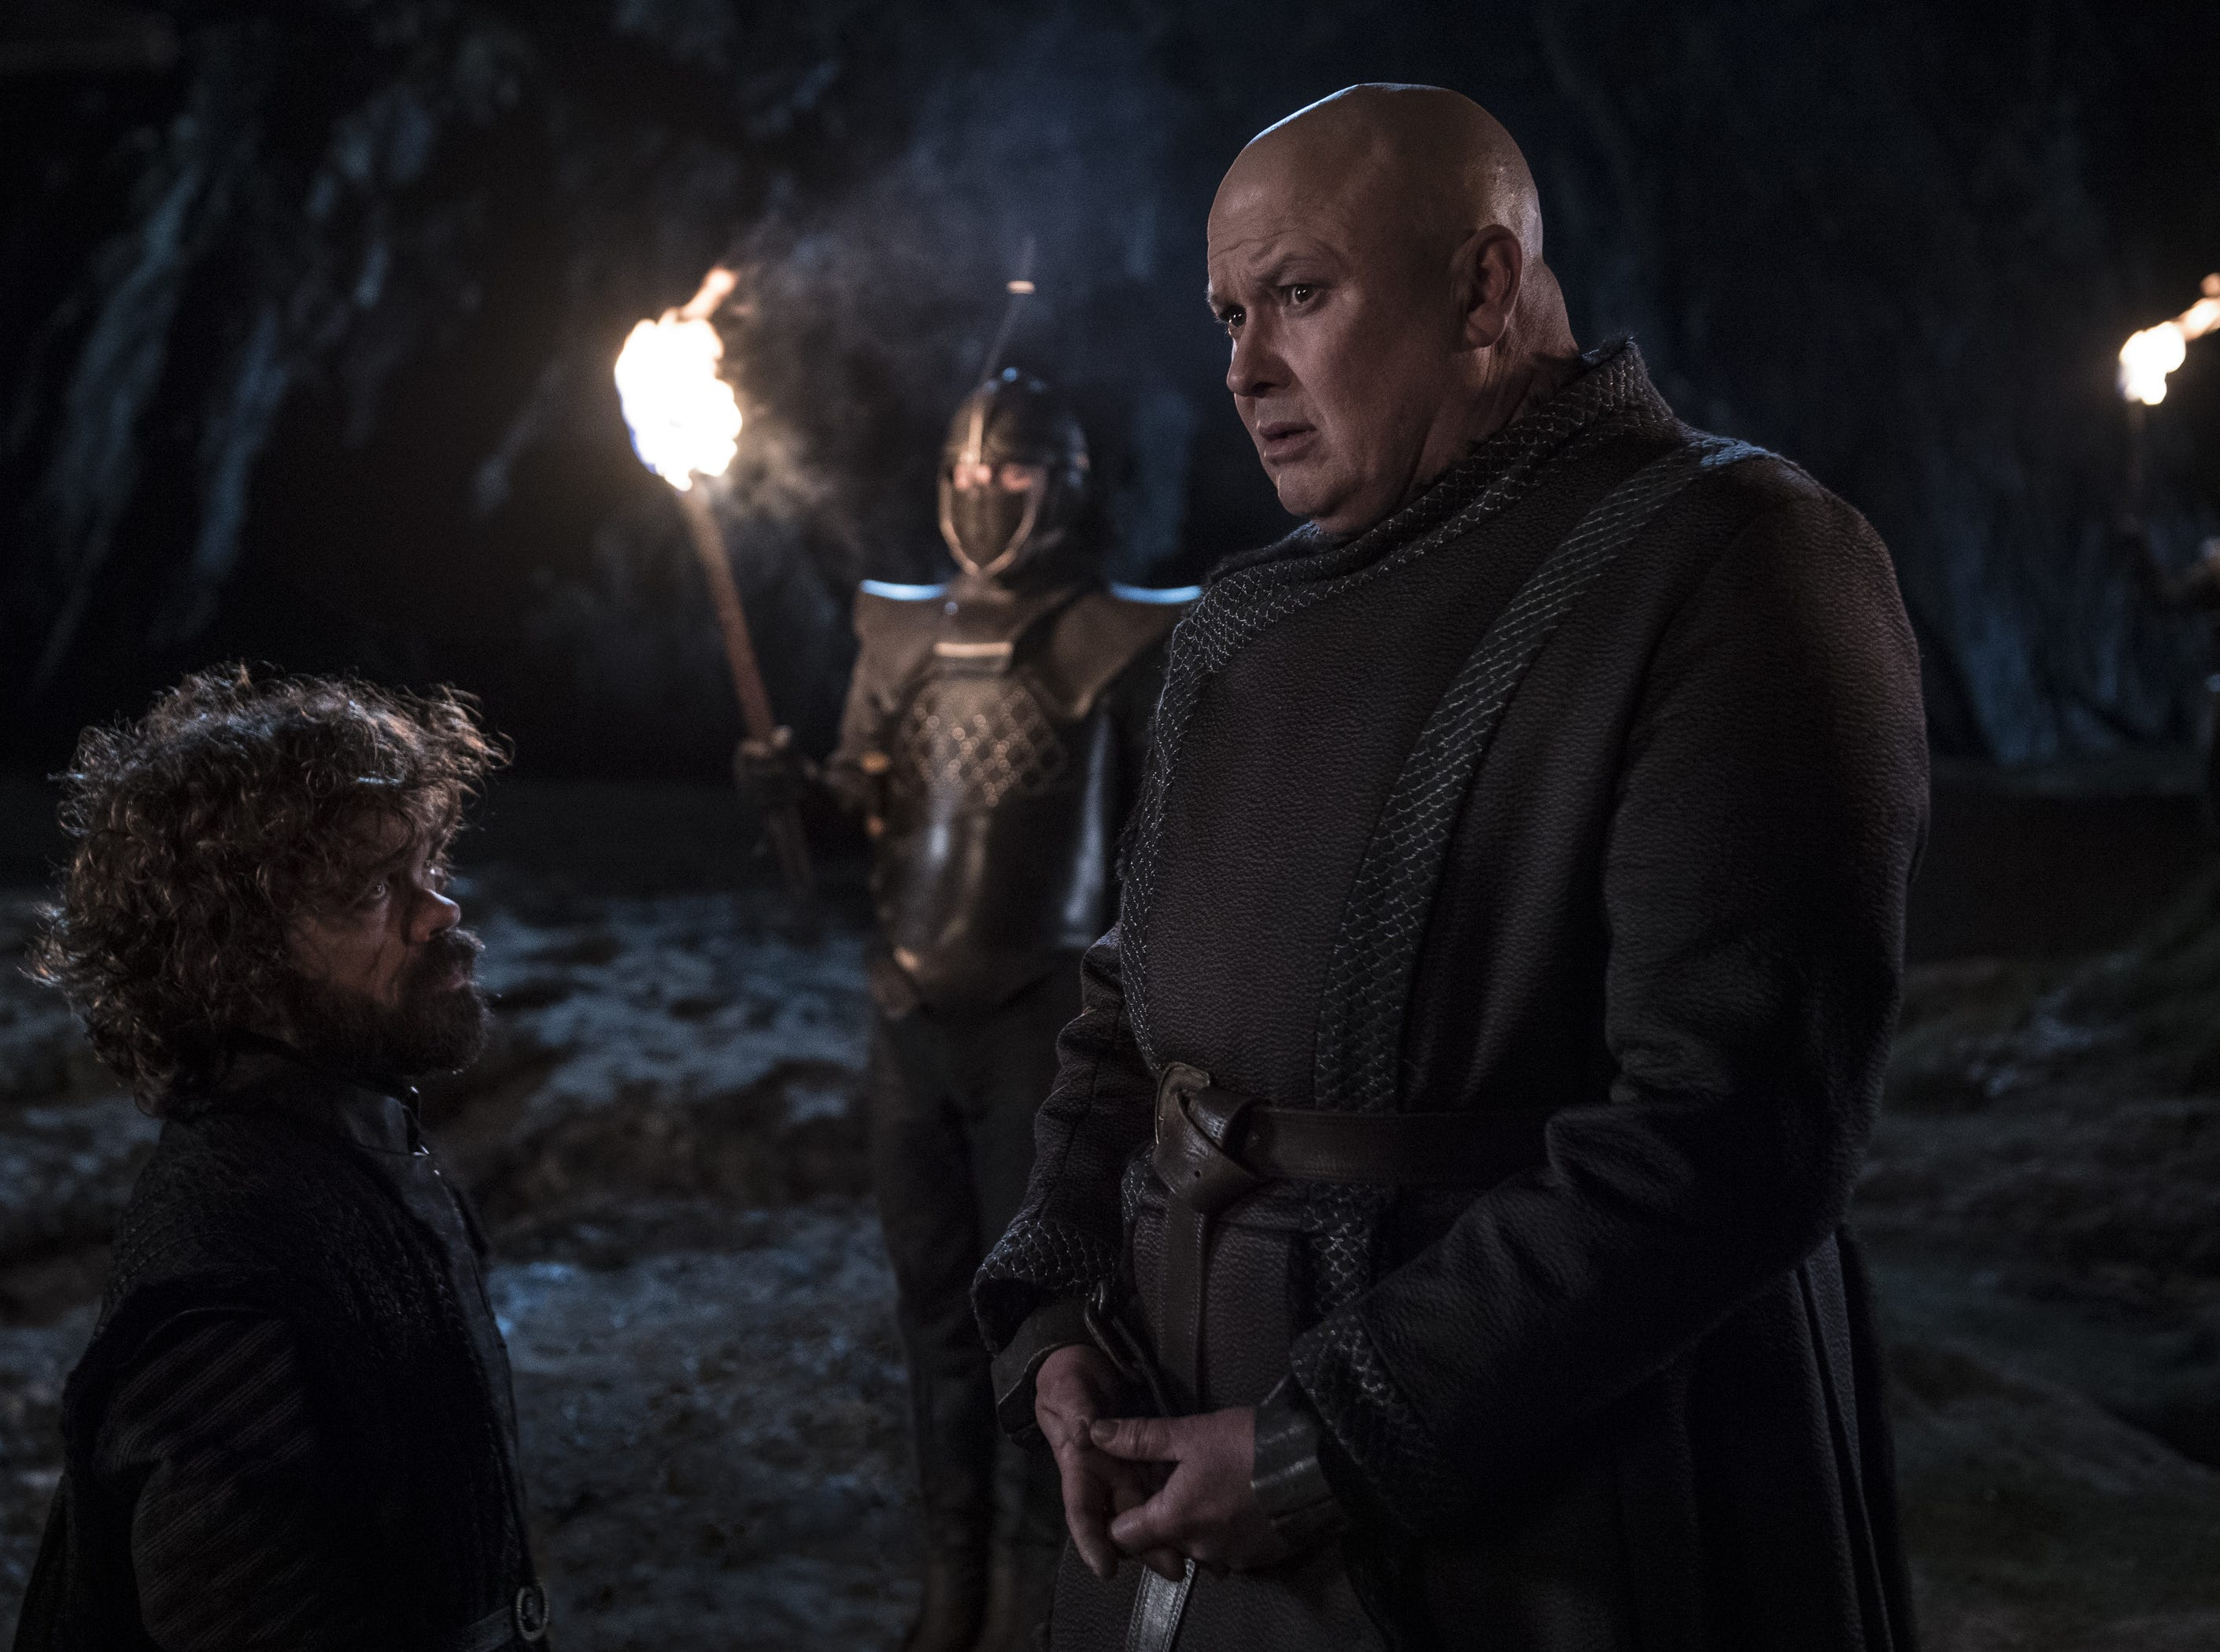 Tyrion Lannister (Peter Dinklage), left, shares a moment with Varys (Conleth Hill) before the Master of Whisperers is barbecued.